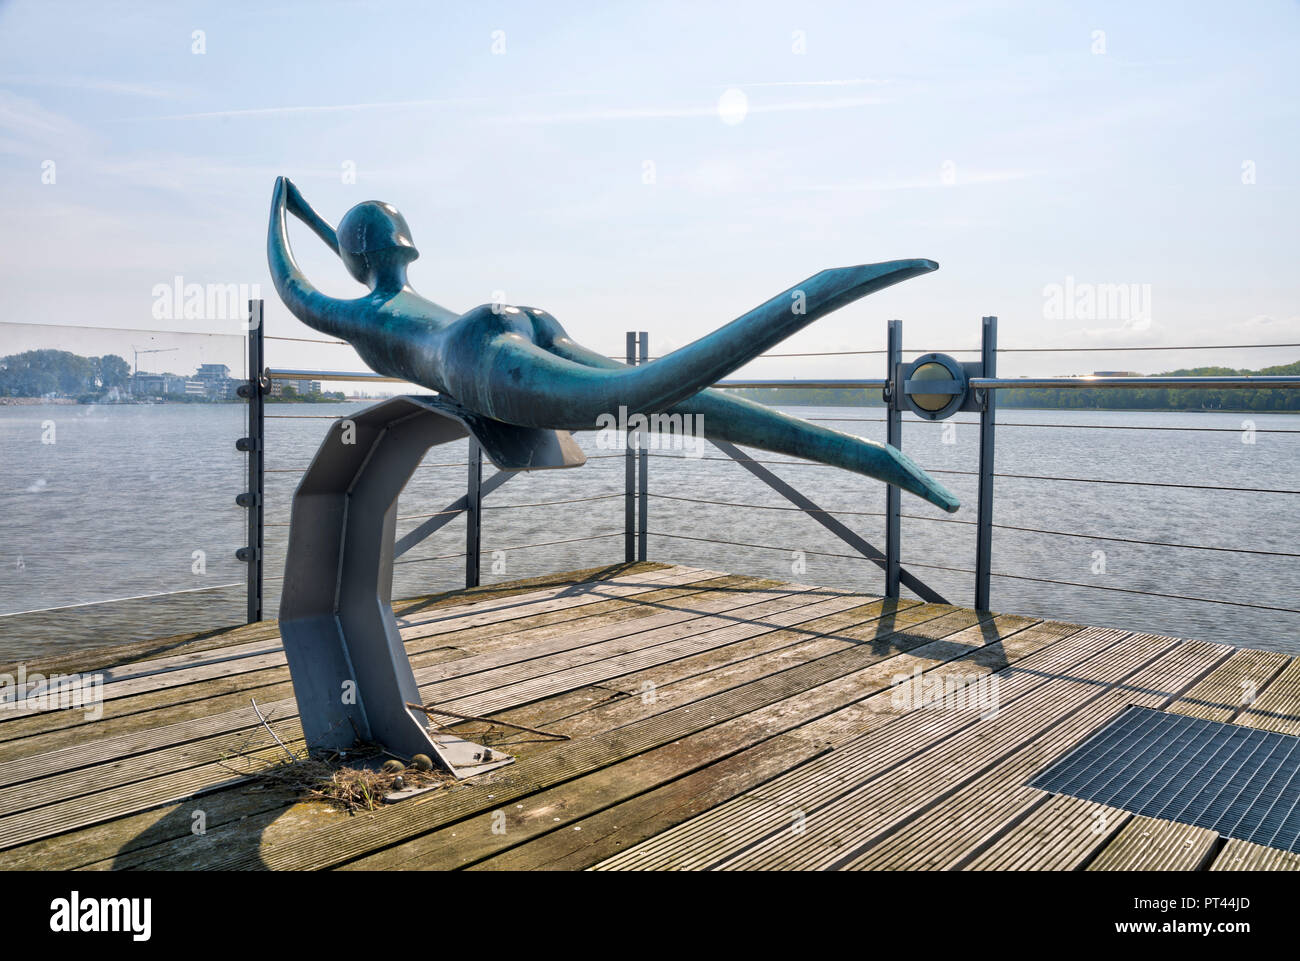 Sculpture am Steinwarder, inland lake, holiday park, Heiligenhafen, Baltic Sea, Schleswig Holstein, Germany, Europe - Stock Image